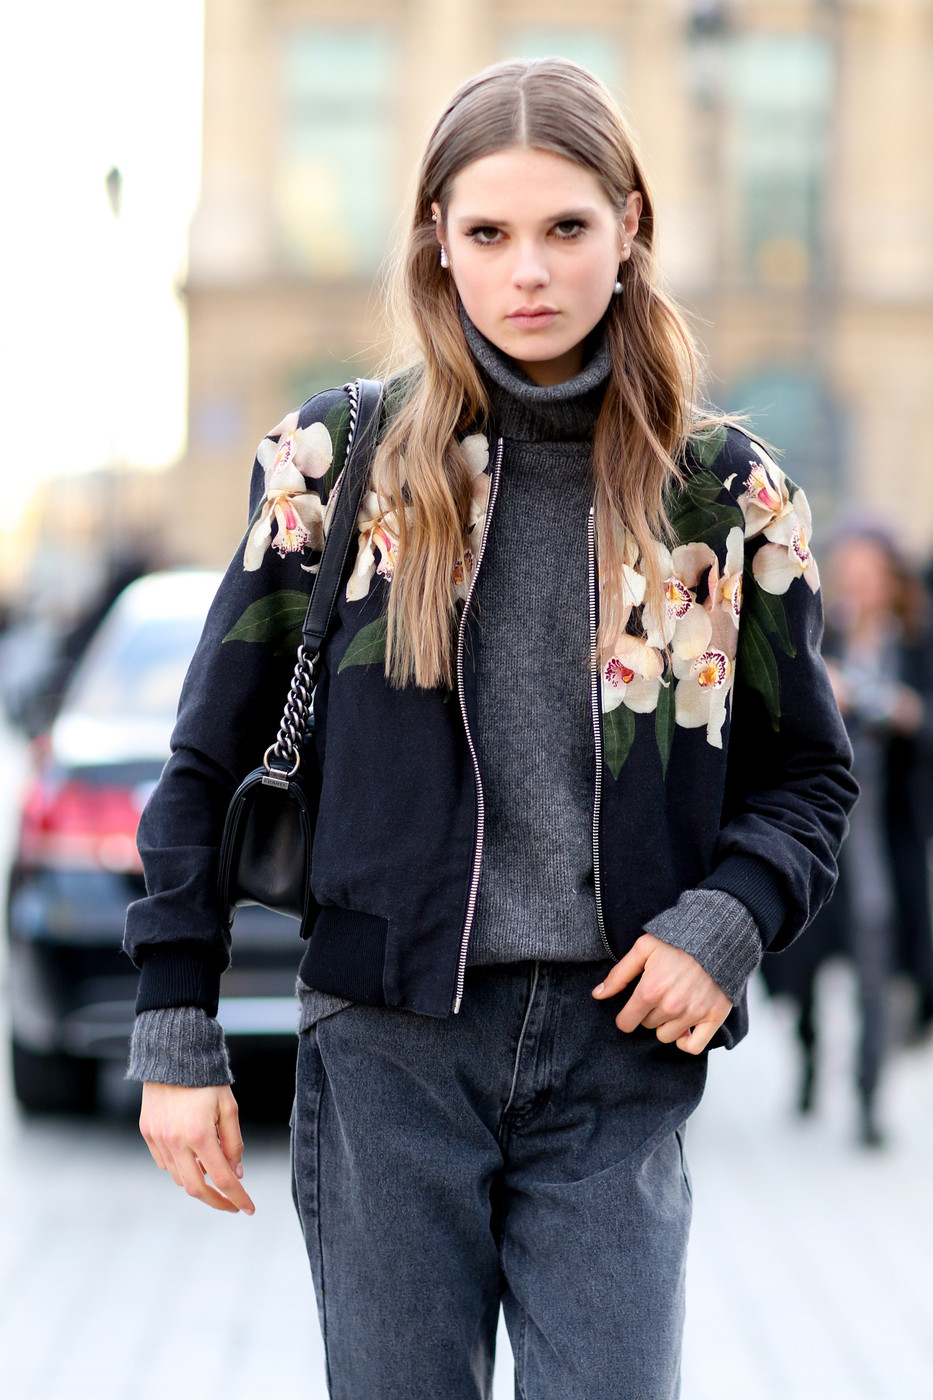 Flower Bomber The Most Standout Street Style At Paris Fashion Week Fall 2014 Livingly